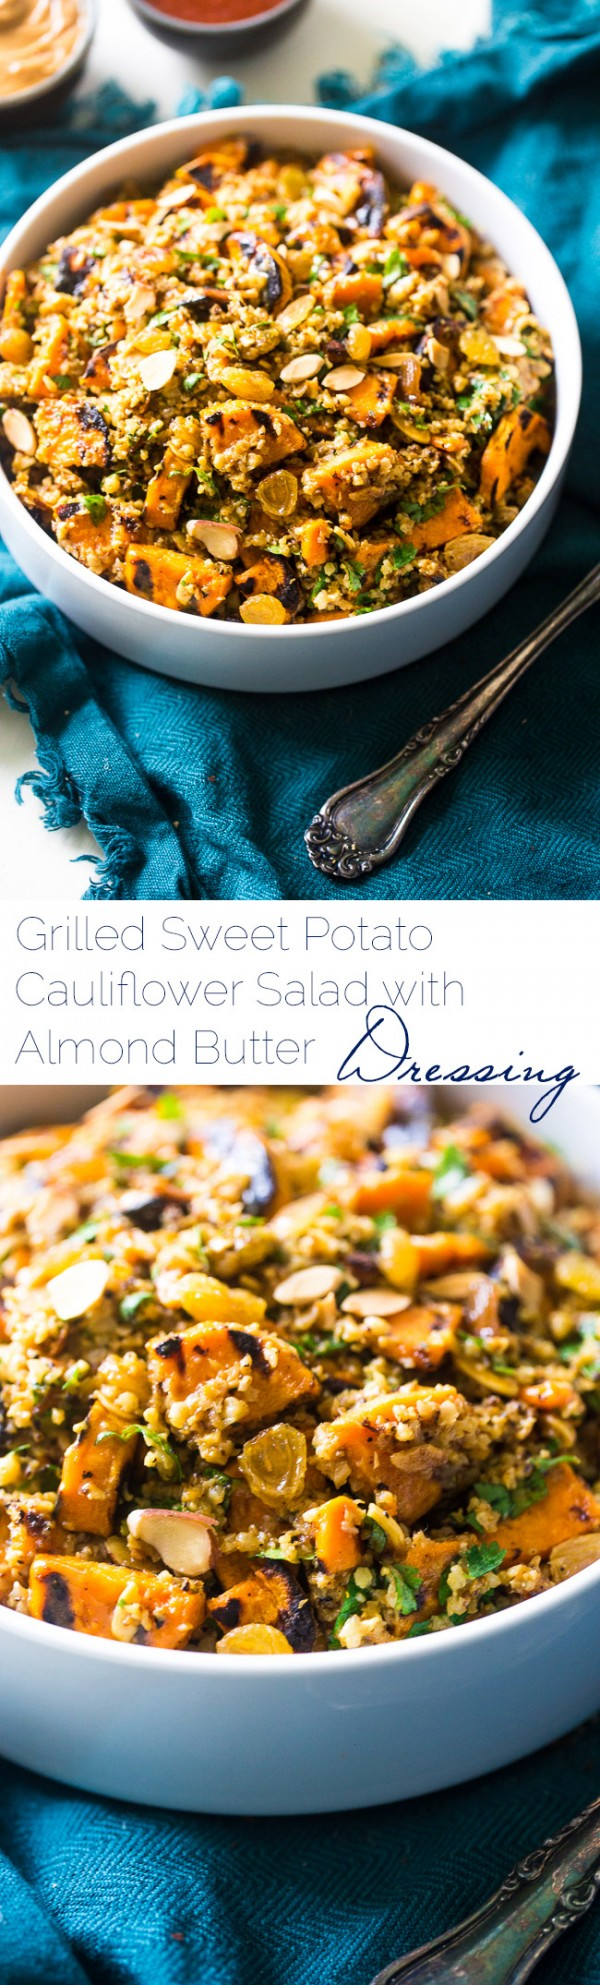 Grilled Sweet Potato Salad with Curry Almond Butter Vinaigrette - Grilled sweet potatoes, cauliflower rice and creamy almond butter make this a healthy, Paleo & Vegan-friendly side dish for the Summer! | Foodfaithfitness.com | @FoodFaithFit